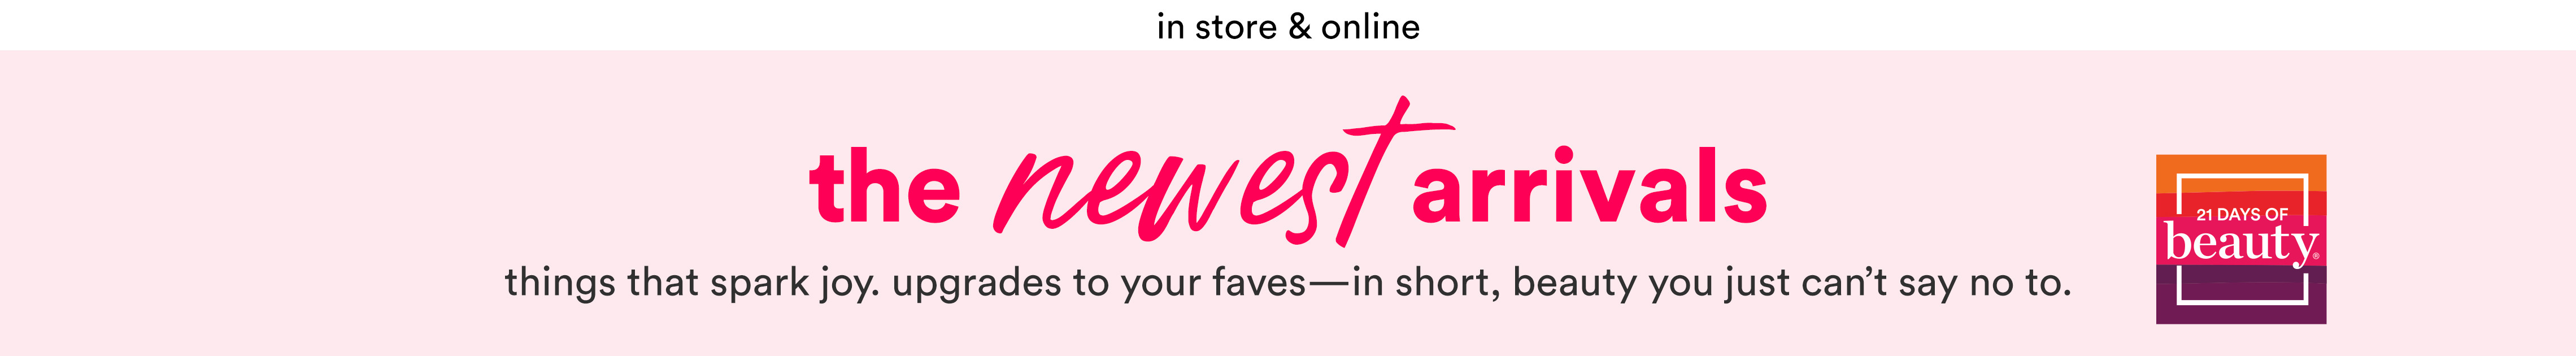 The newest arrivals - beauty that makes you feel like your best self